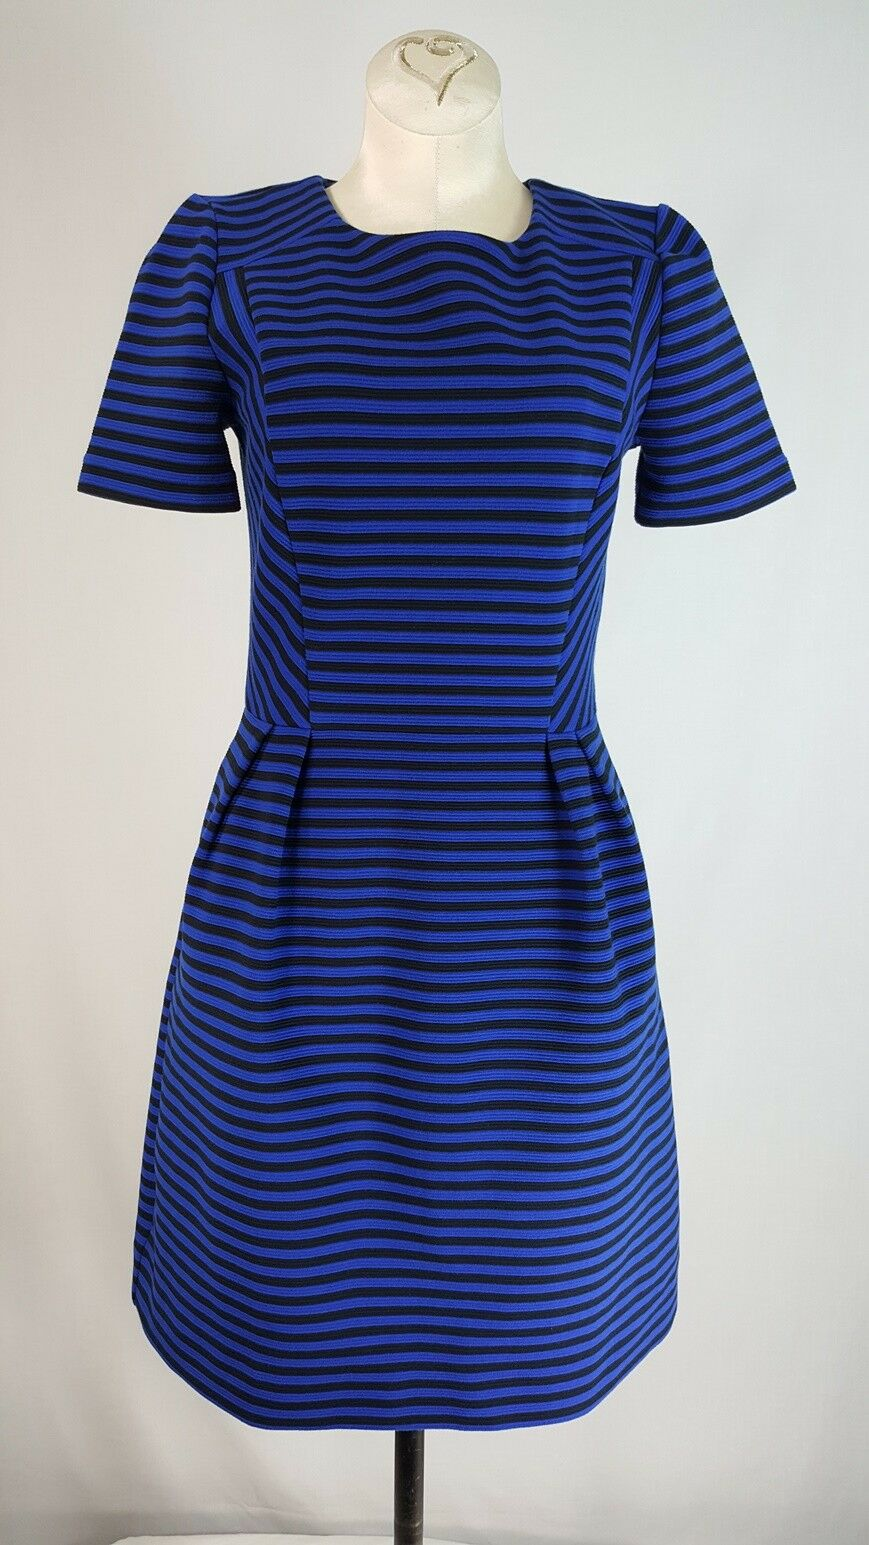 Madewell bluee Striped Short Sleeve Dress Size 2 Gallerist Ponte Knit